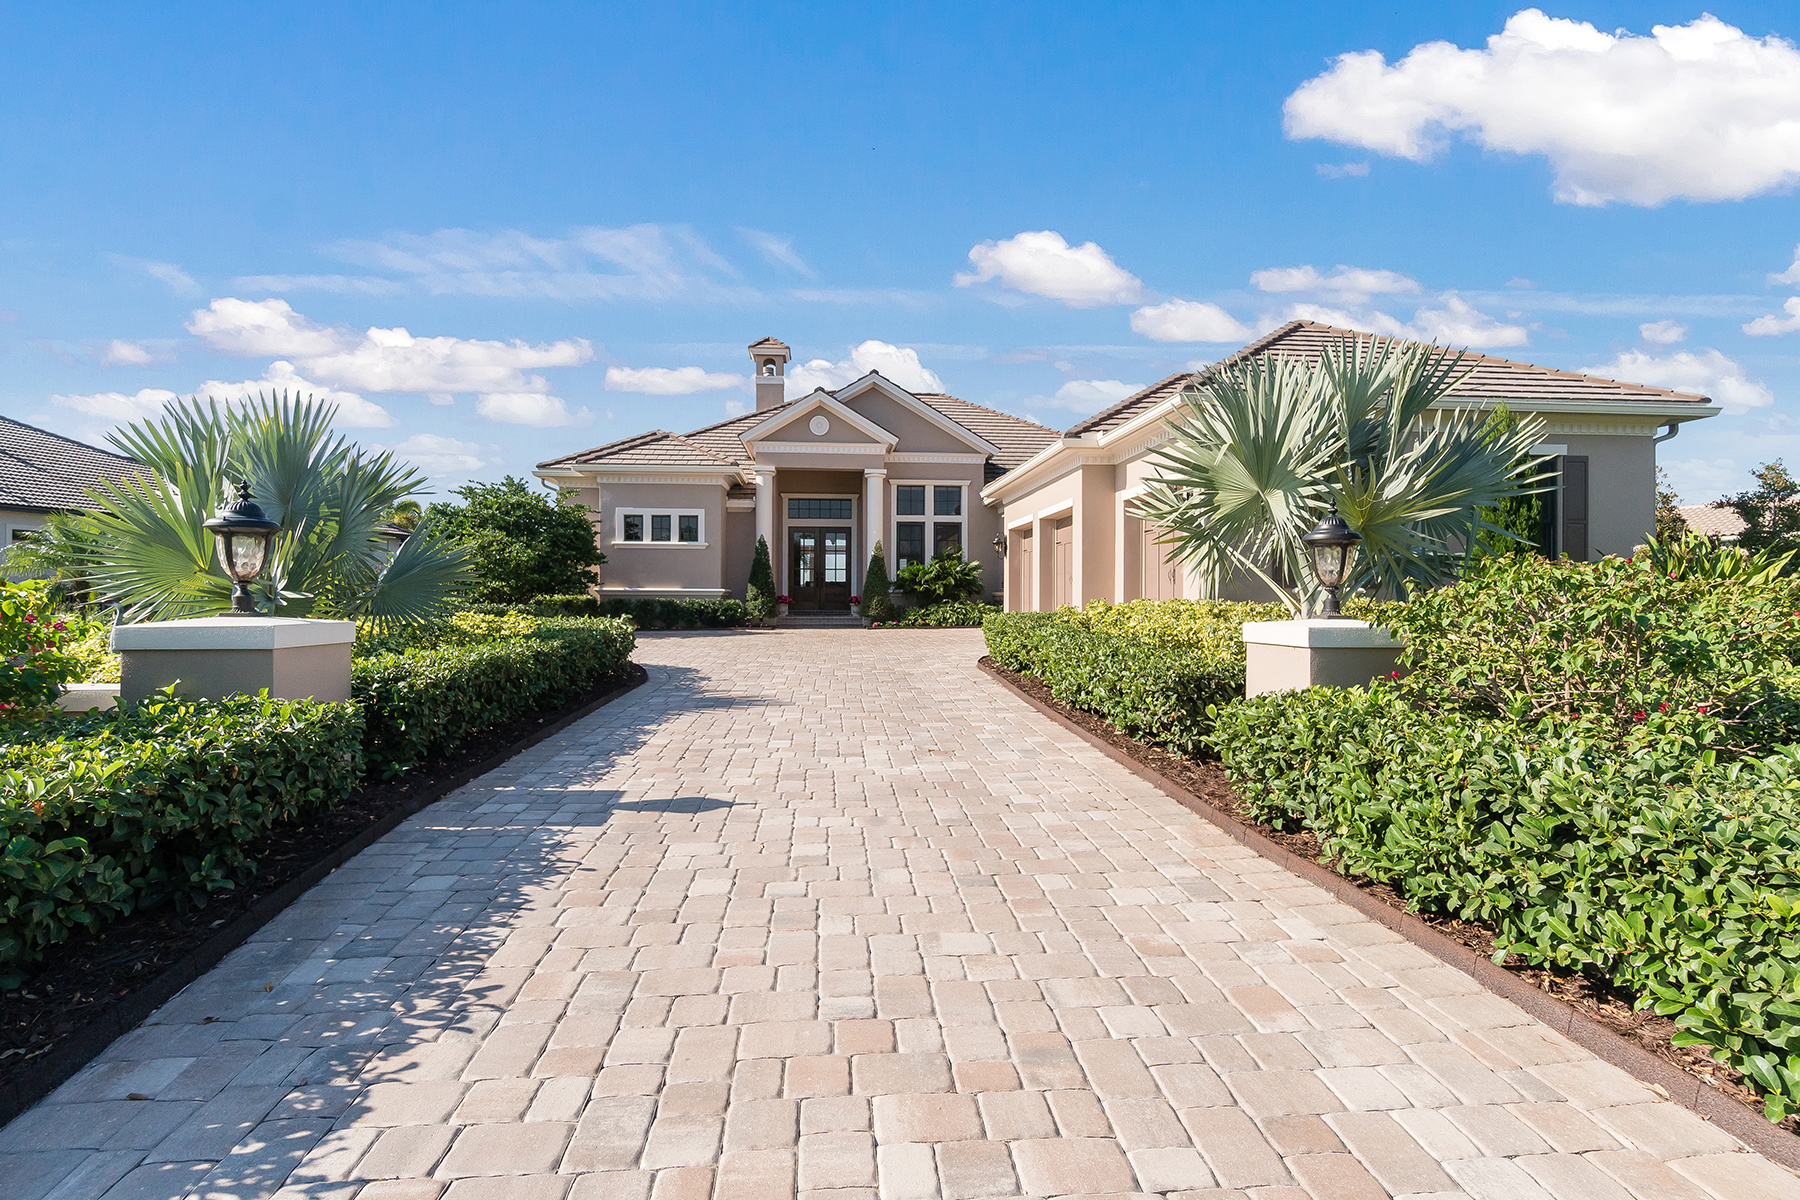 Single Family Home for Sale at THE LAKE CLUB 16318 Daysailor Trl Lakewood Ranch, Florida, 34202 United States